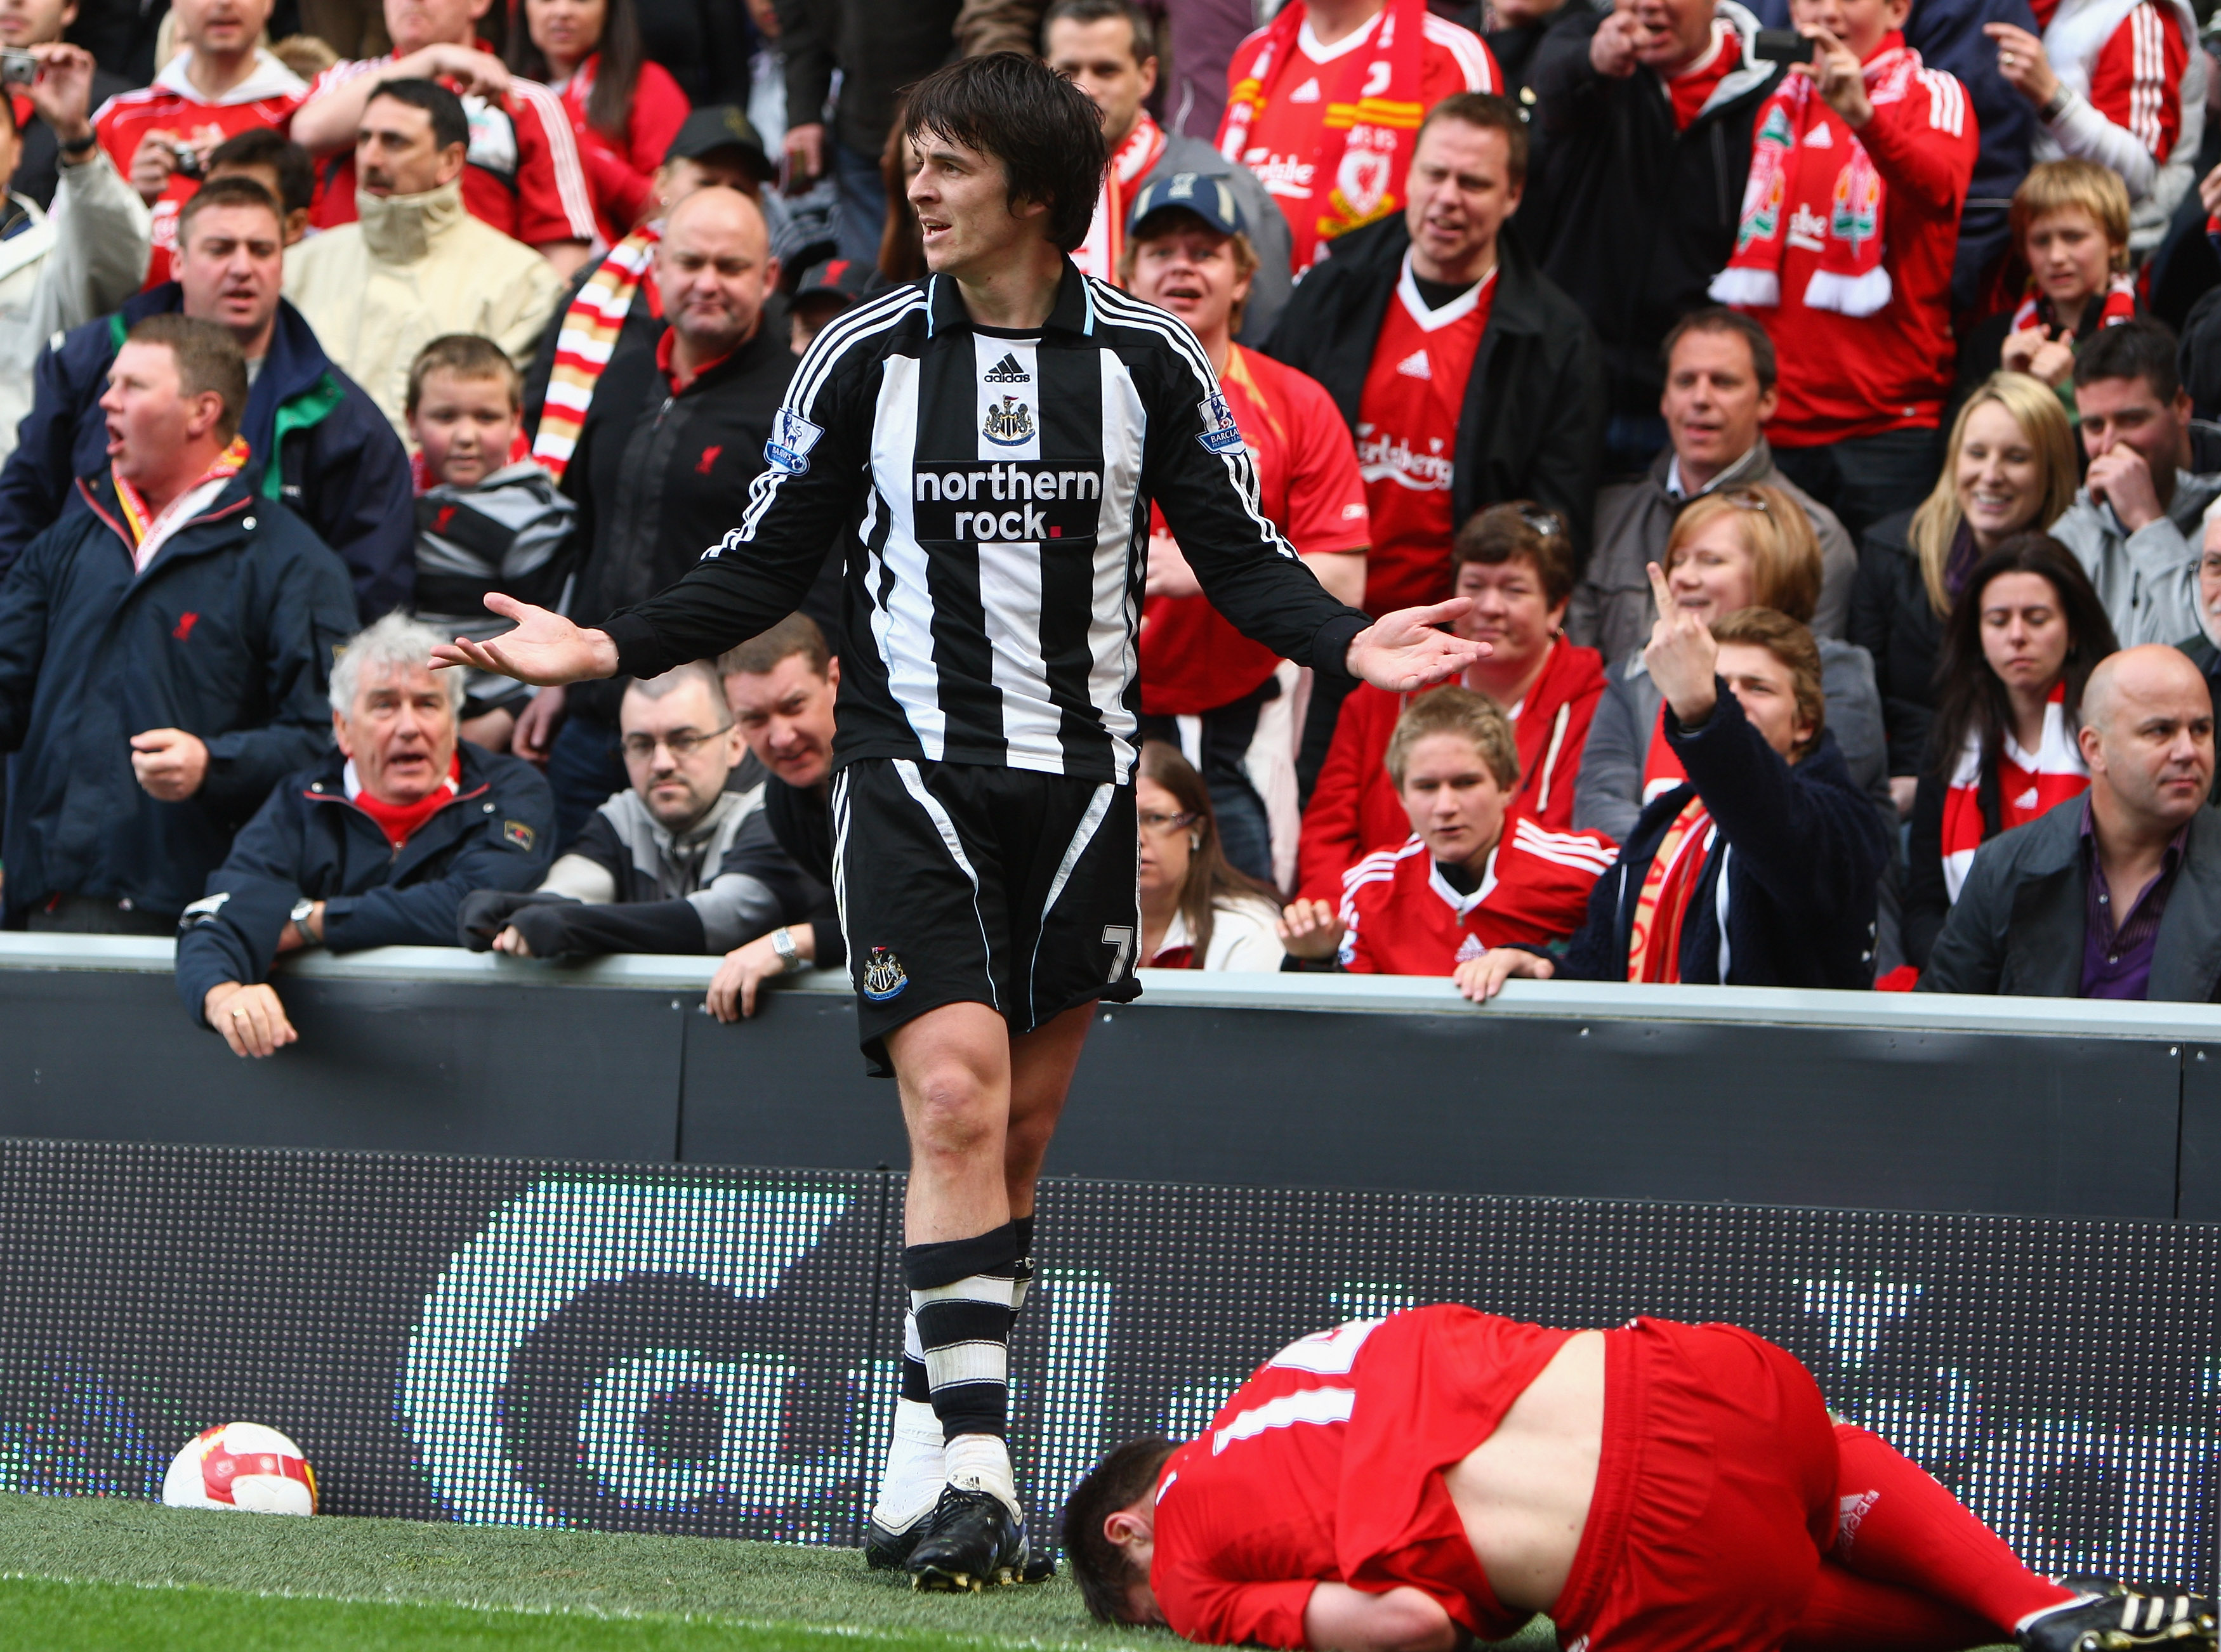 Newcastle United's Joey Barton: The Highs and Lows | Bleacher Report |  Latest News, Videos and Highlights